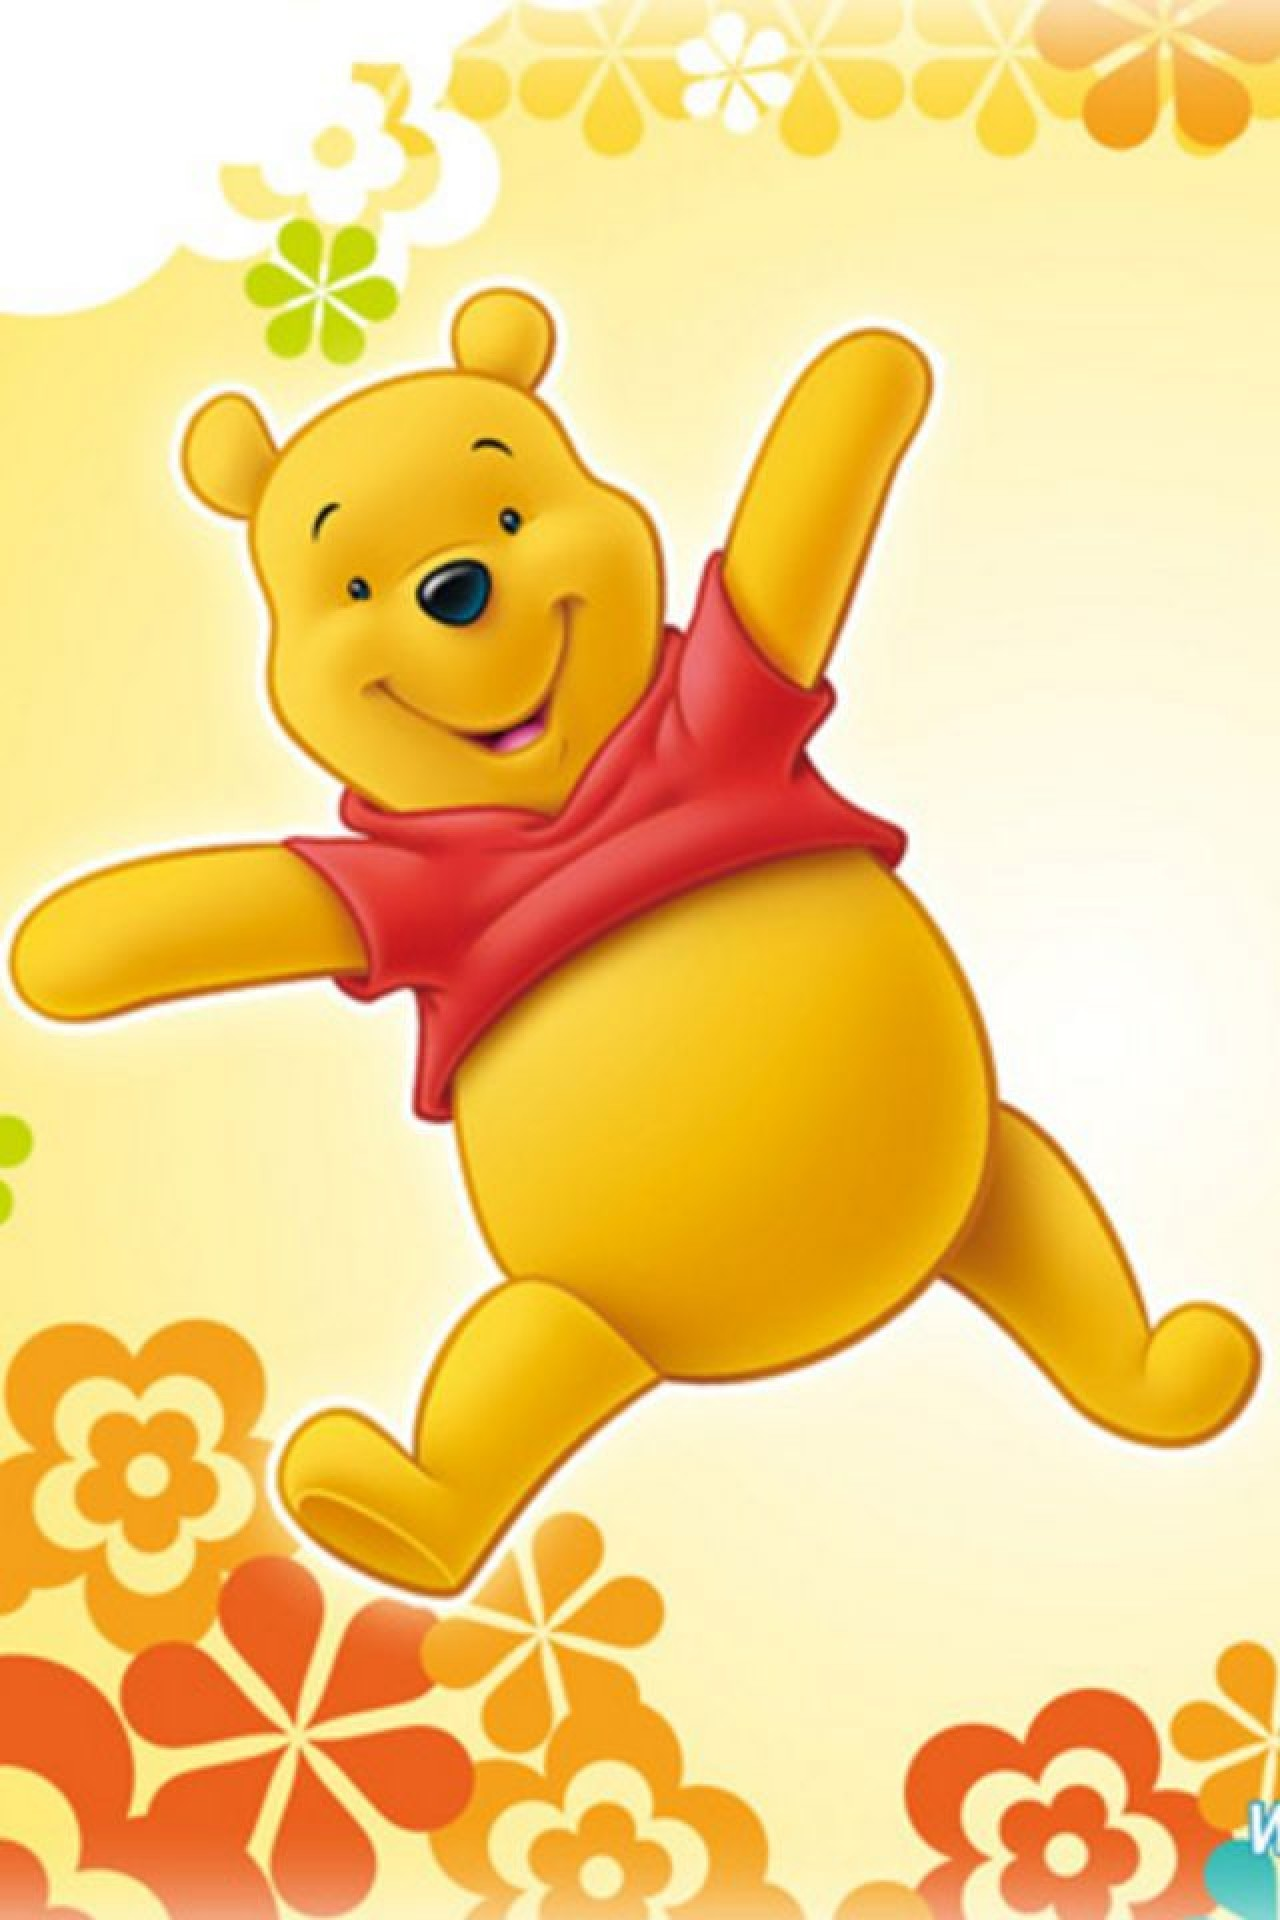 It's just a picture of Nifty Pooh Bear Images